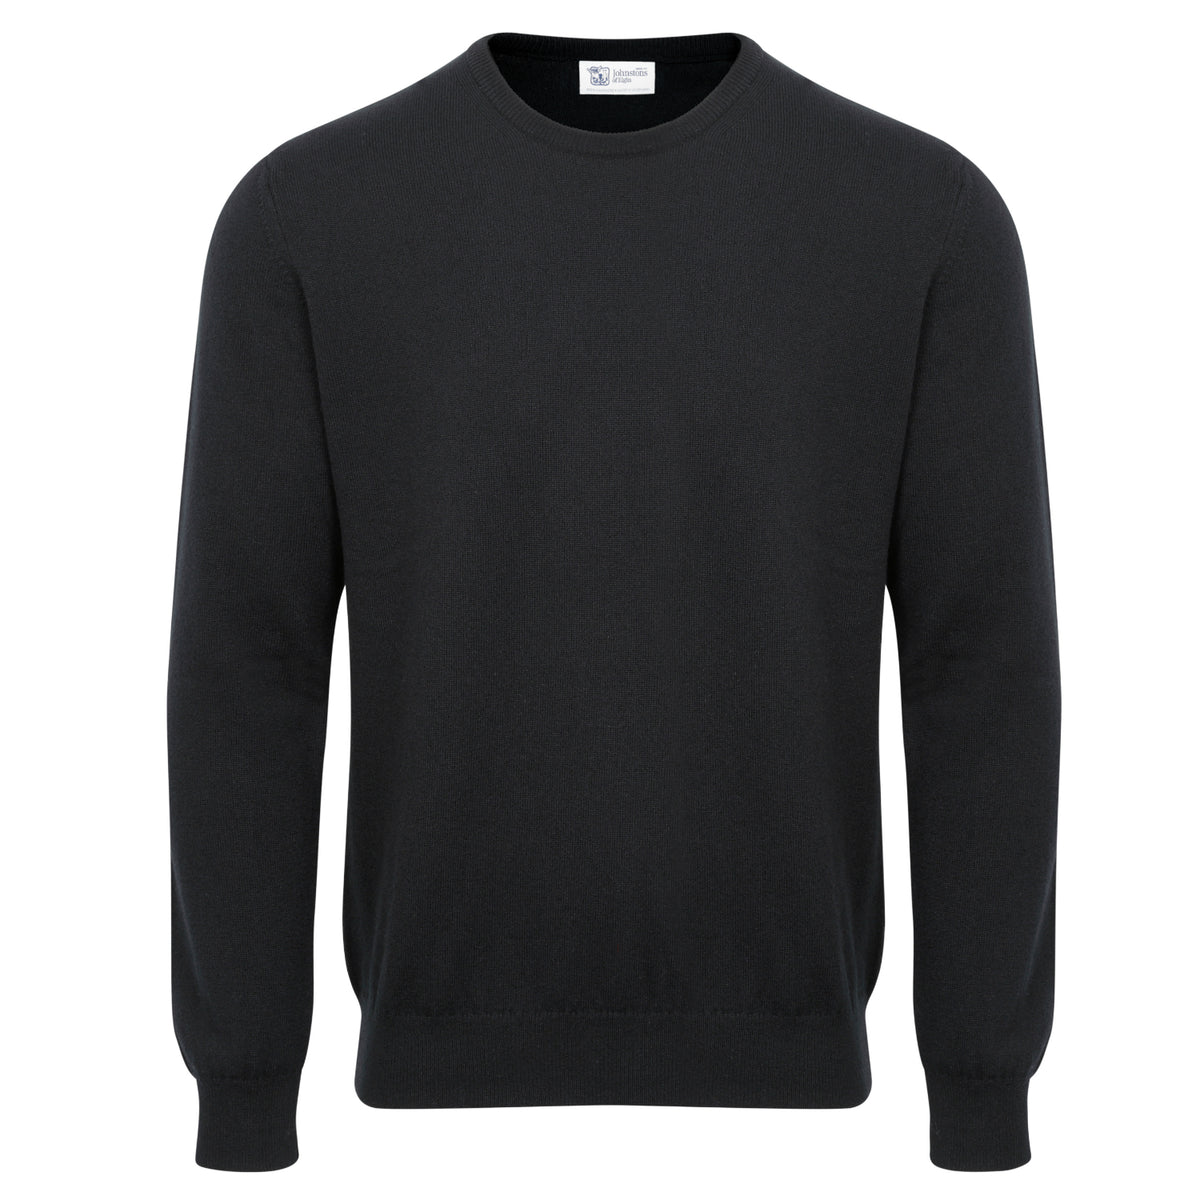 Johnstons of Elgin | Mens 2-Ply Cashmere Round Neck | Black | Shop now at The Cashmere Choice | London